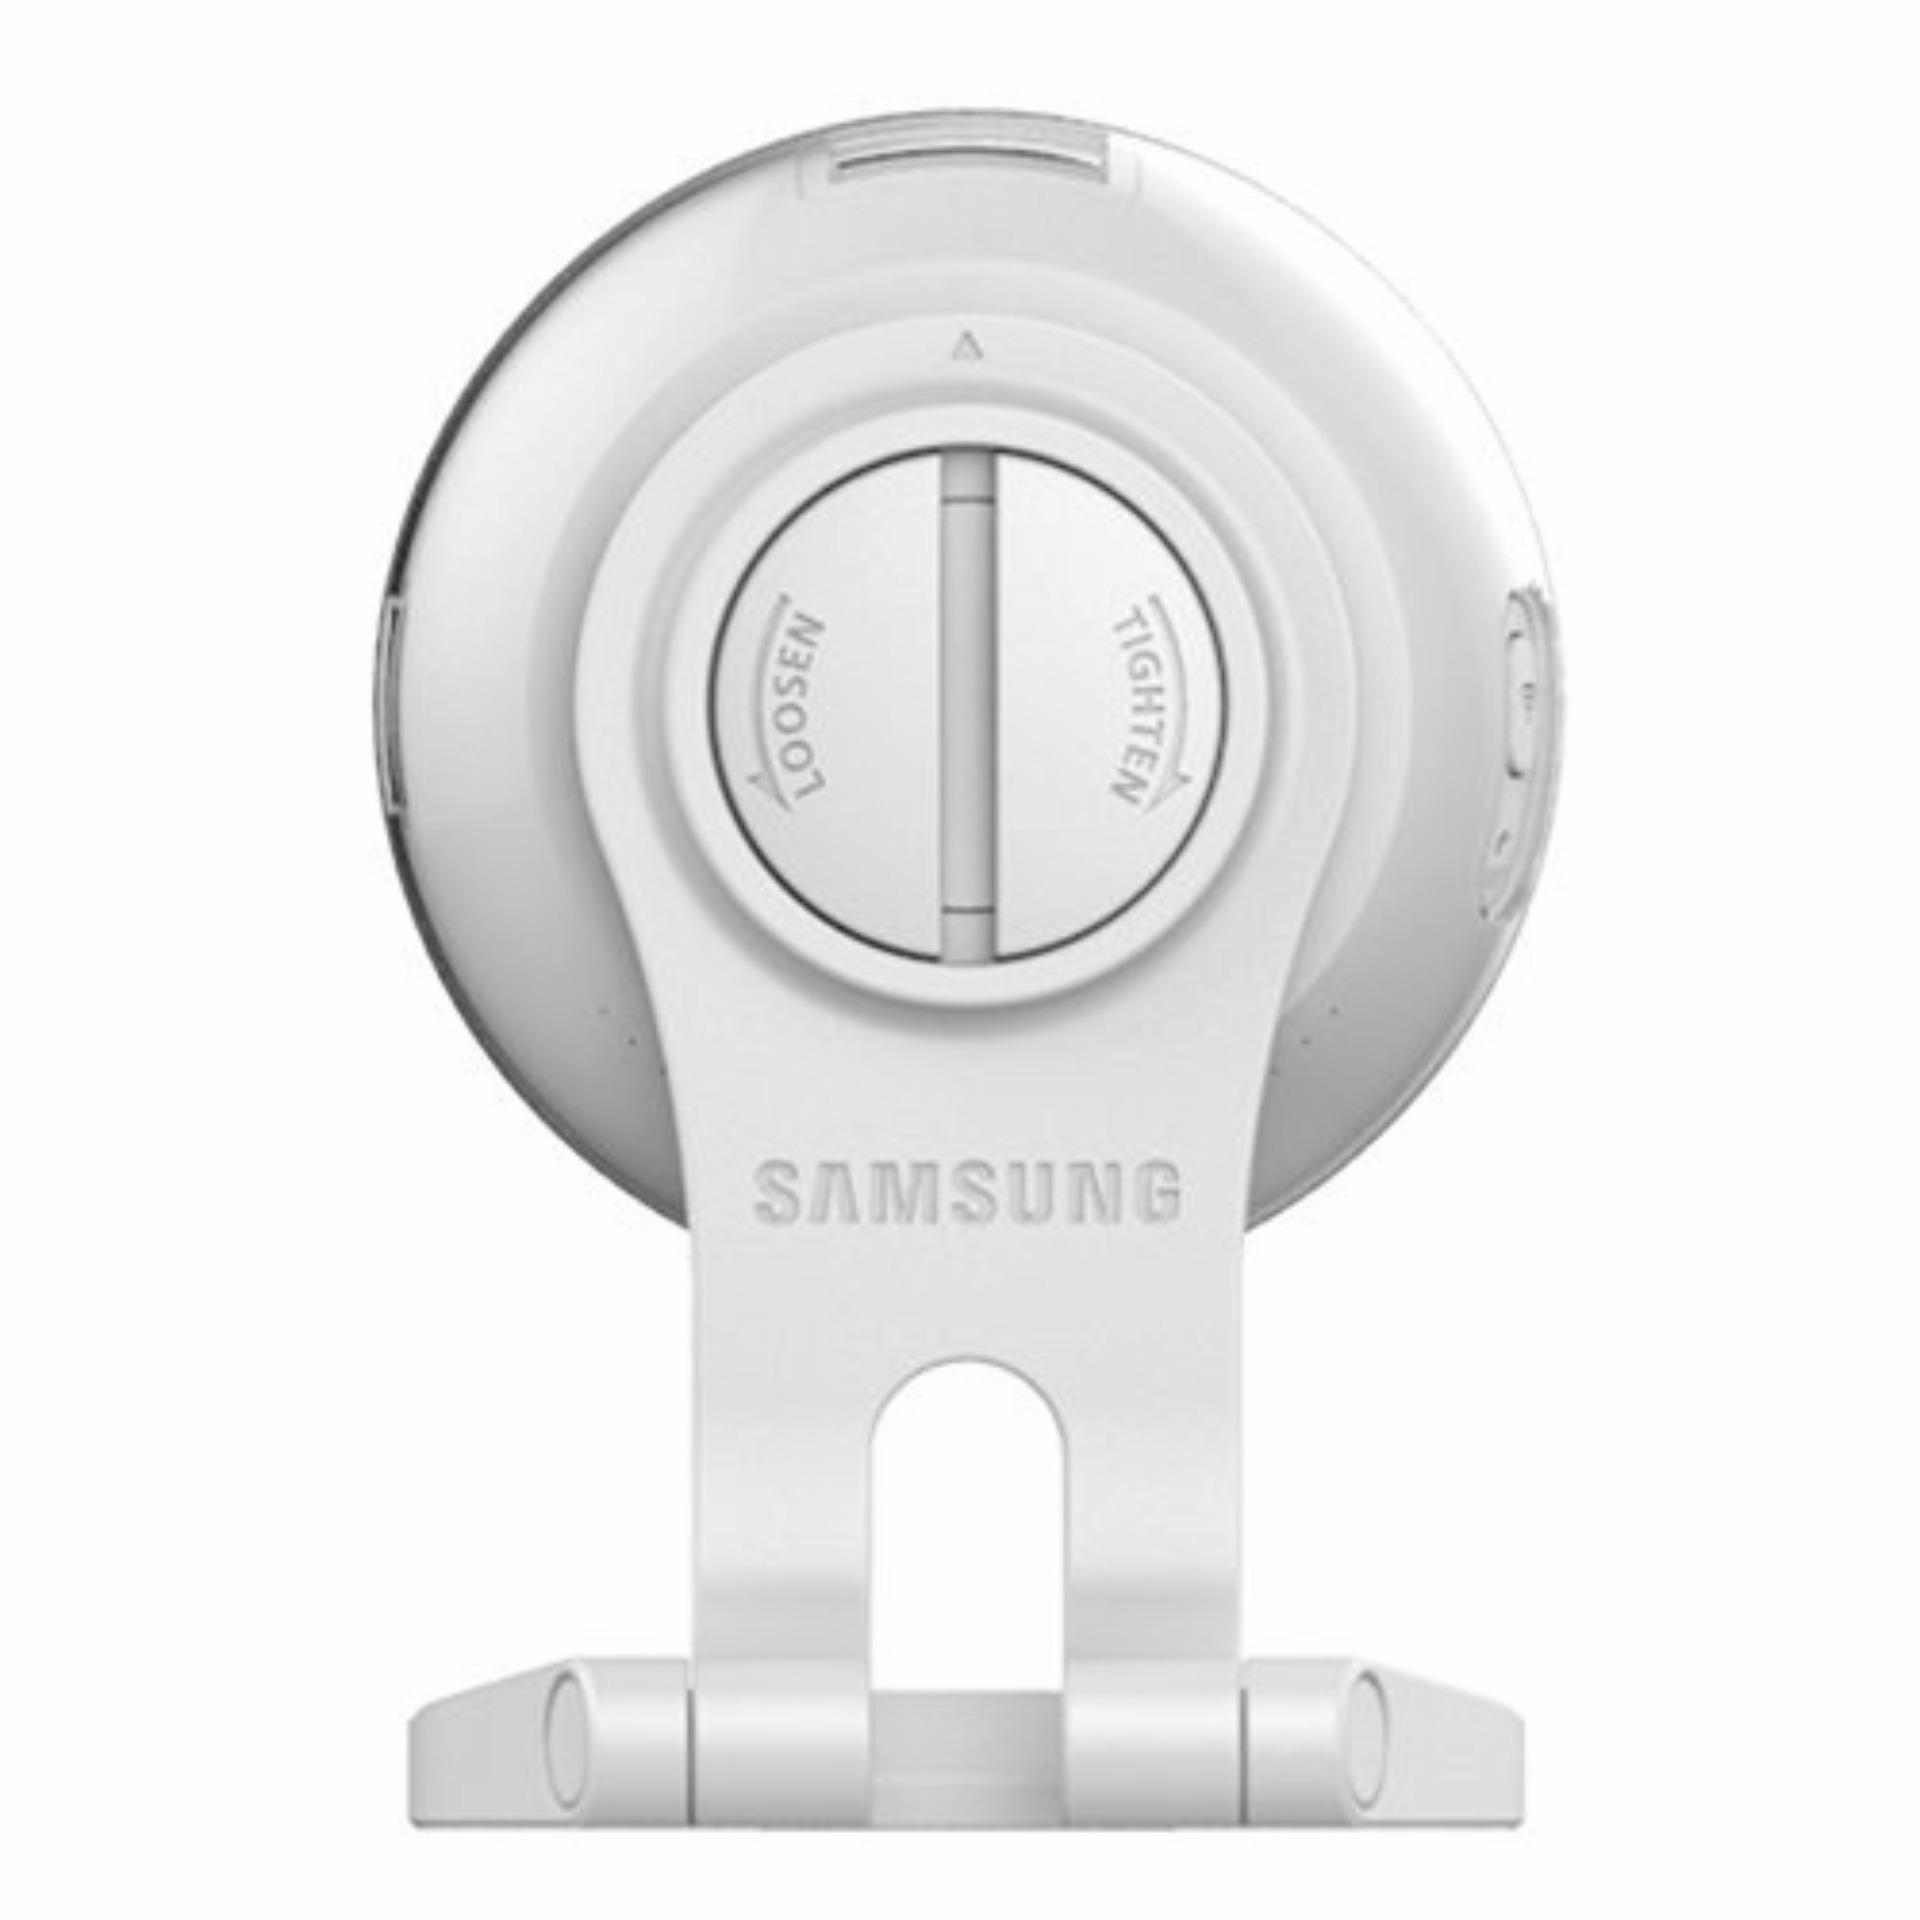 Samsung SNH-V6431BN SmartCam Indoor Full HD WiFi IP camera